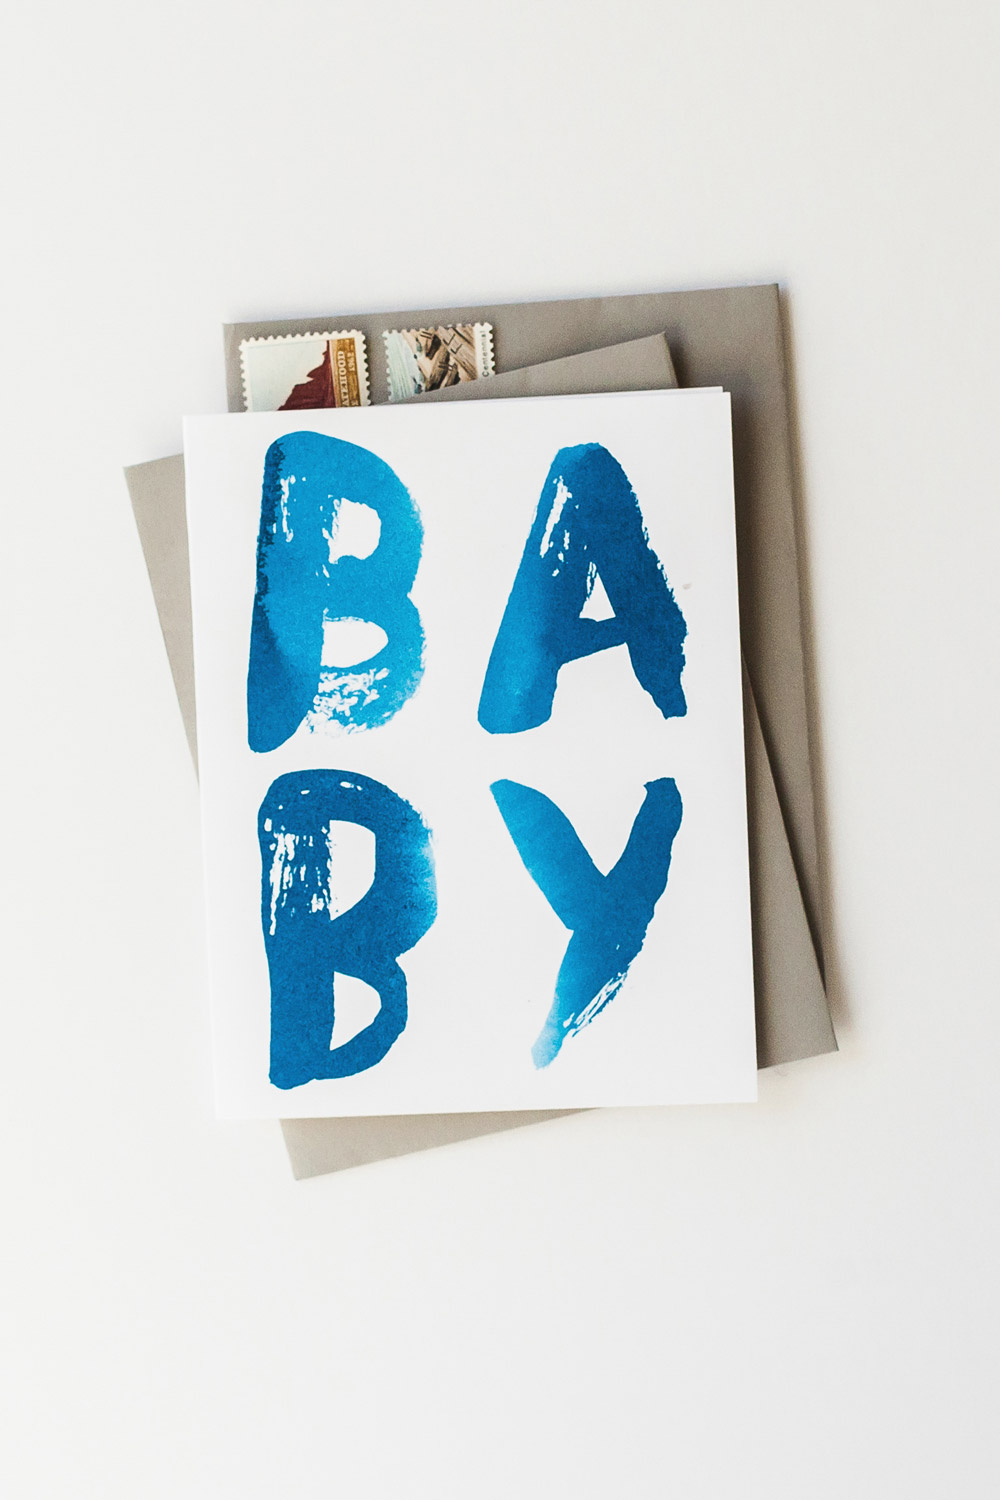 fc101-baby-stamps.jpg